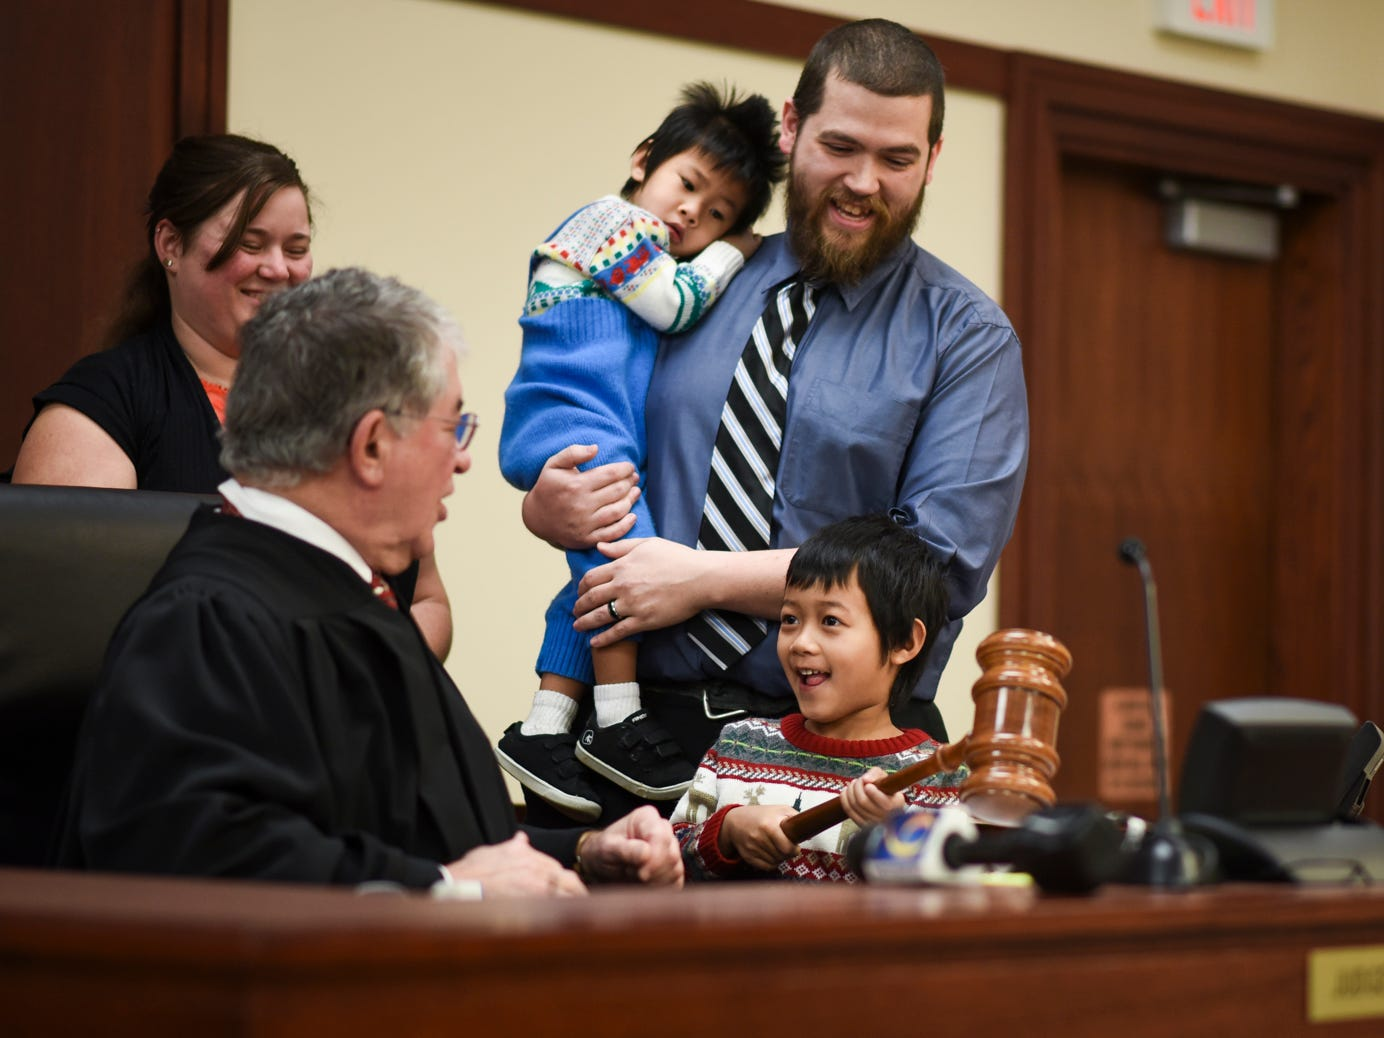 Five-year-old Nathanael Blakely of Mason, gets a chance to use Ingham County Probate Judge George Economy's special Christmas gavel during a hearing that made him and 2-year-old brother Owen's adoptions official, Tuesday, Dec. 18, 2018, at Veterans Memorial Courthouse in Lansing.  Economy has held adoption week 32 of his 33 years on the bench. Economy is retiring at the end of the year. Also pictured are Mark and Emily, the boys' parents.